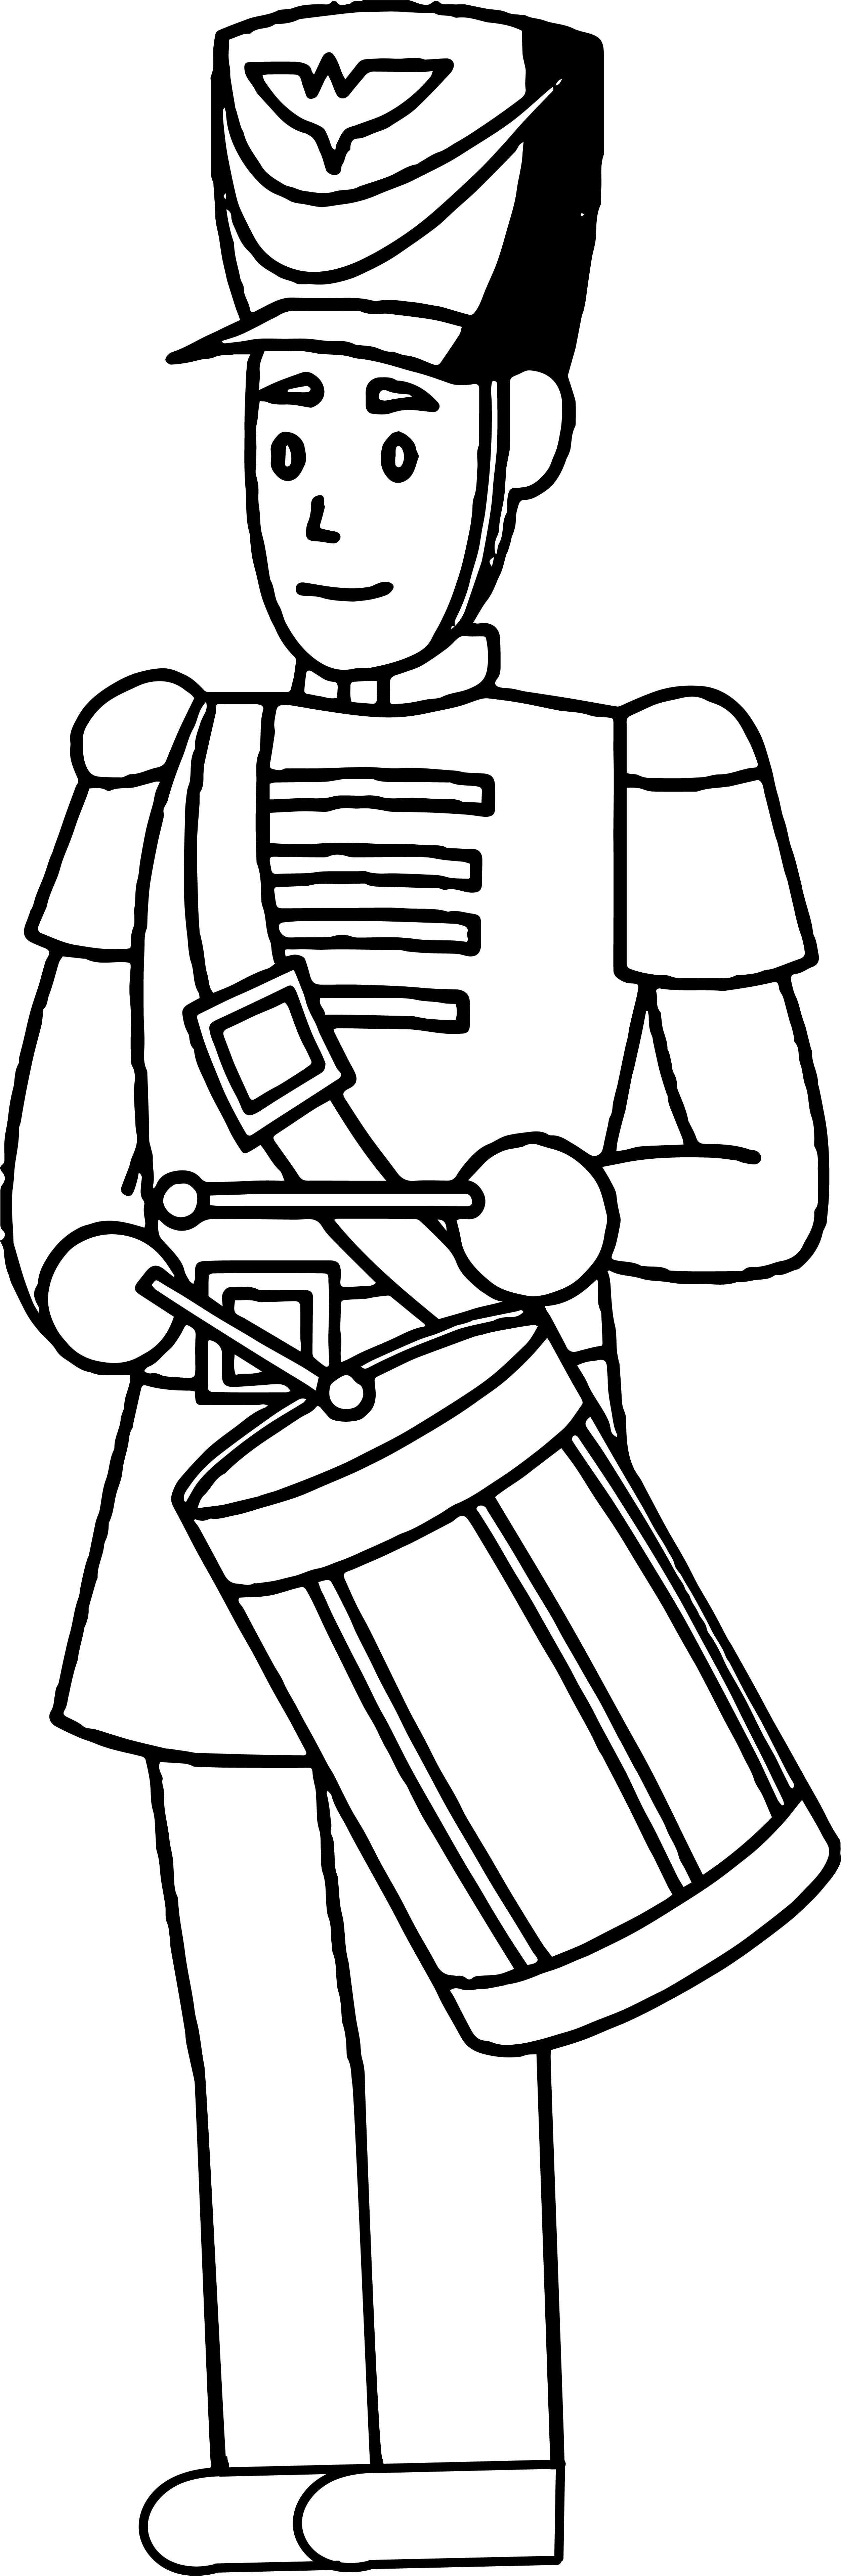 Cool Wood Toy Soldier Coloring Page Coloring Pages Toy Soldiers Soldier Drawing